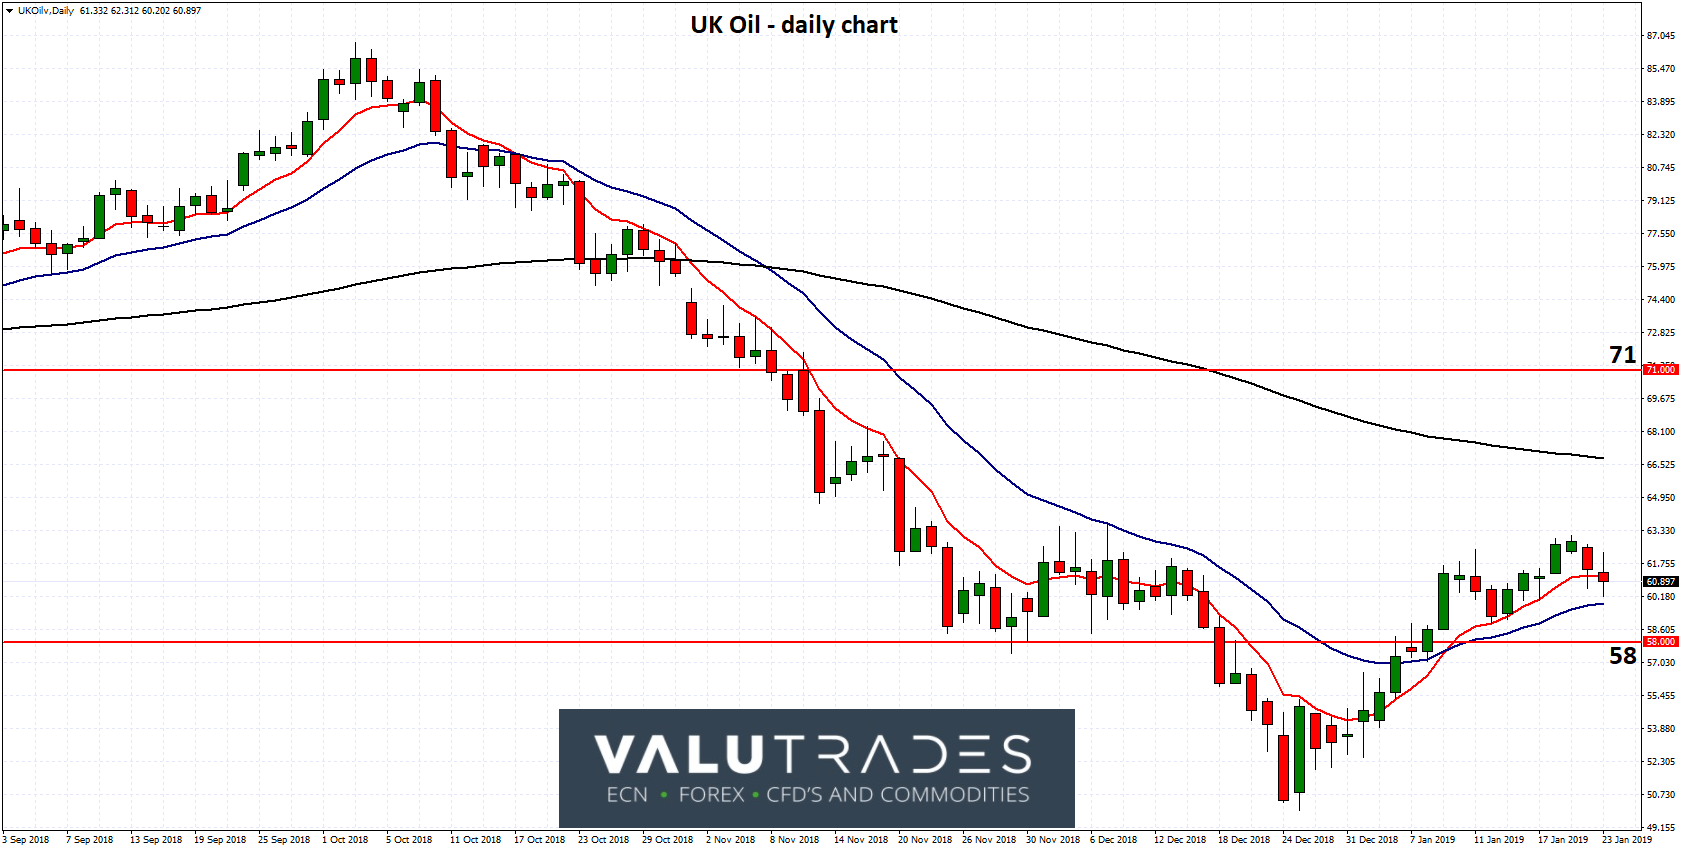 UK Oil - Consolidates Above Key Level of 58 as Global Concerns Weigh